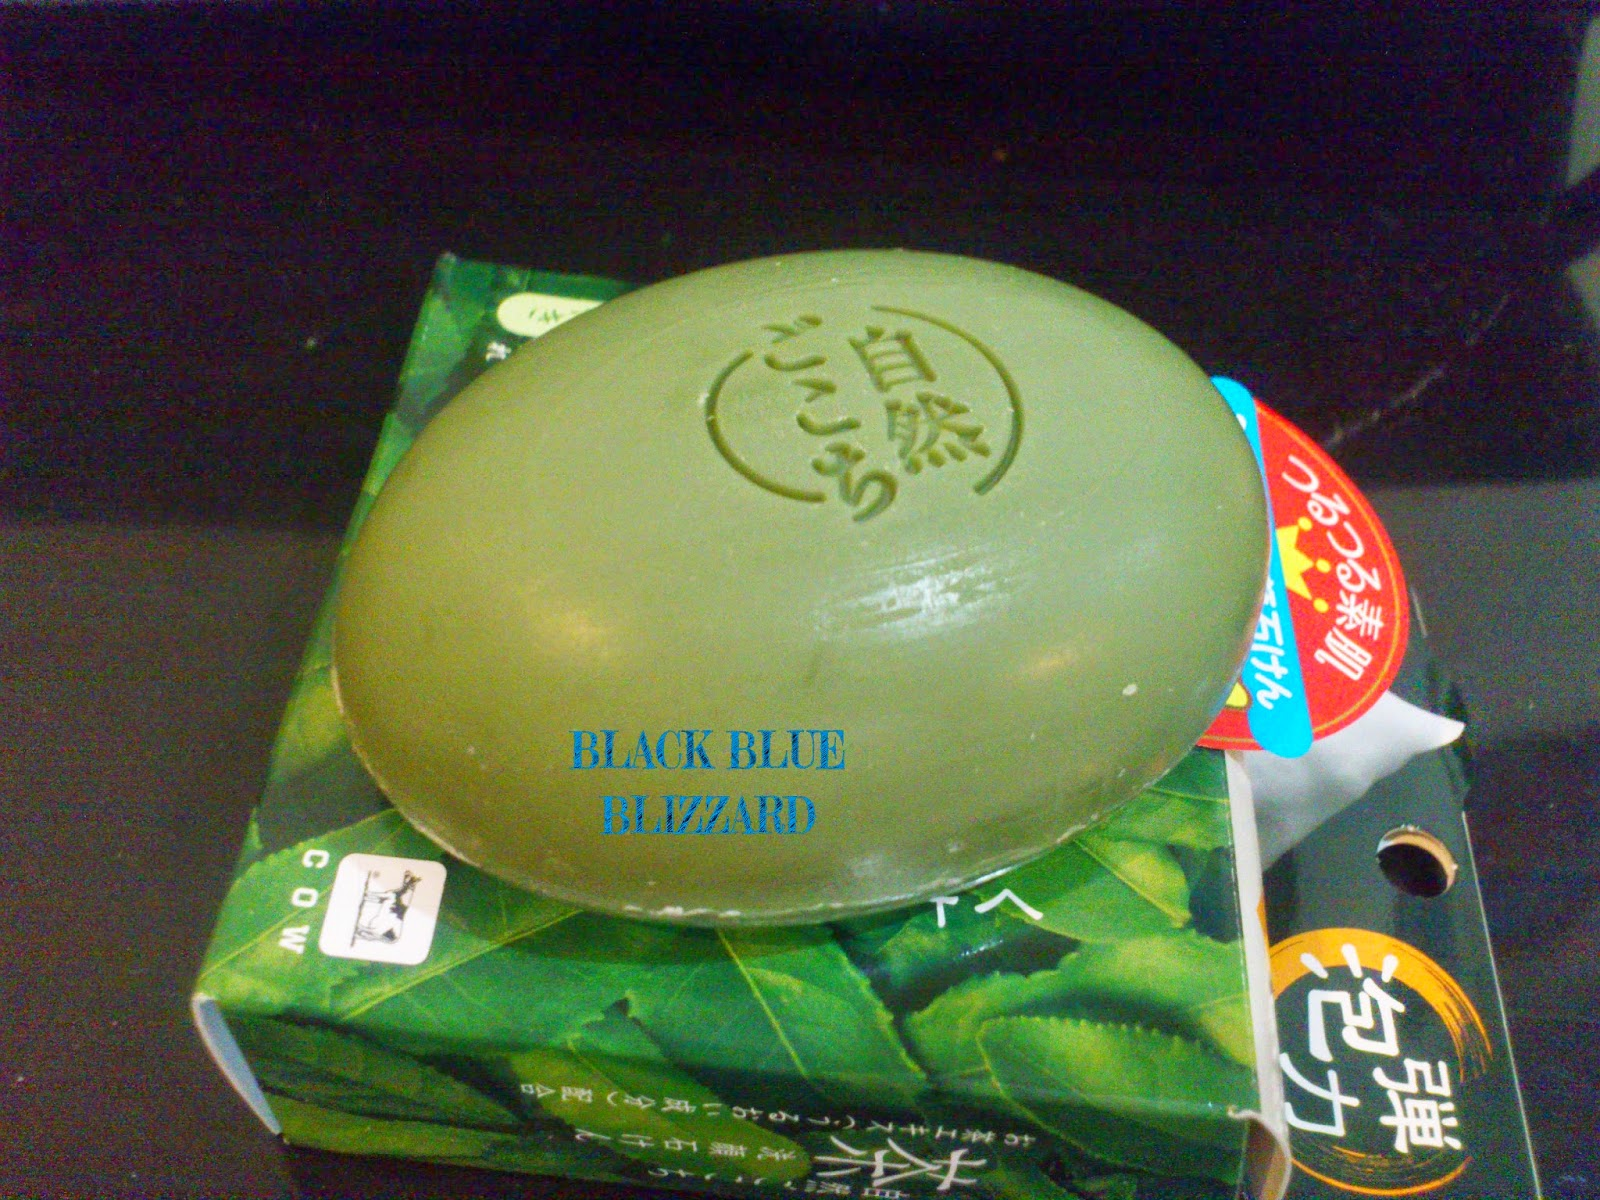 shizengokochi facial soap review, cowbrand shizengokochi, shizengokochi green tea facial soap review, shizengokochi blogger review, cowbrand indonesia